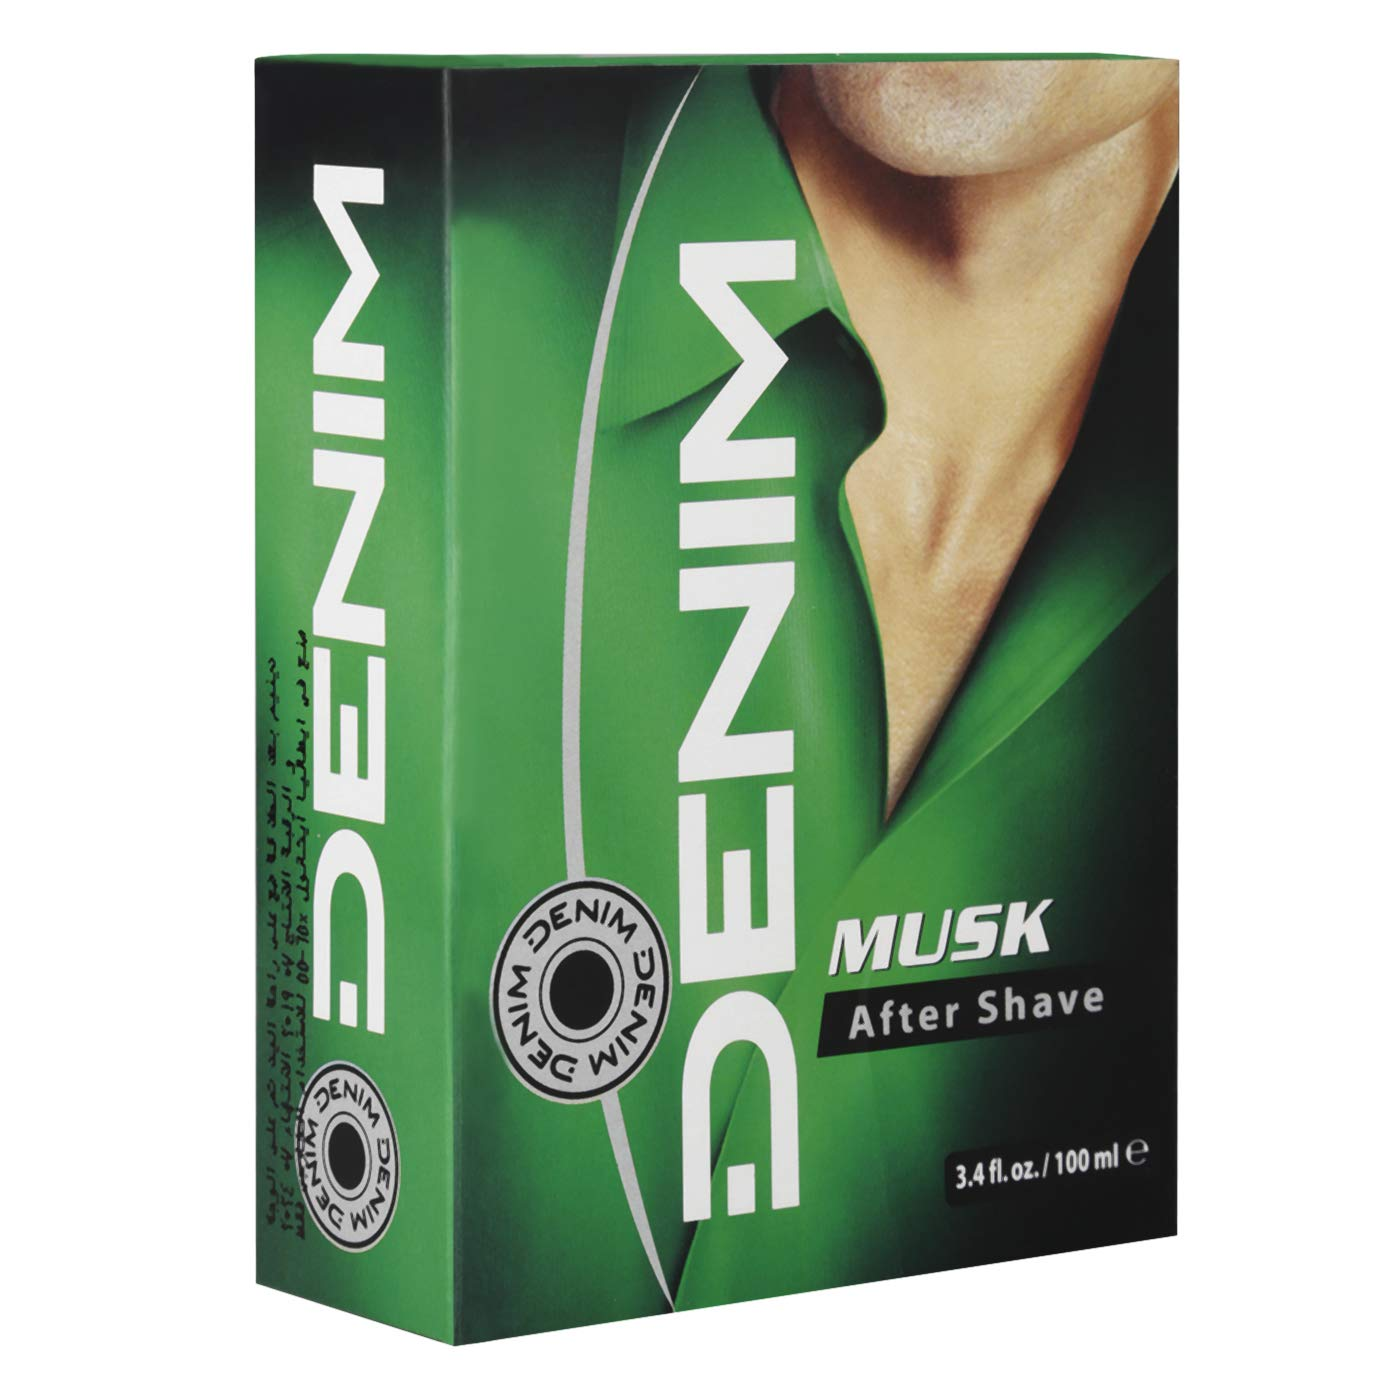 Denim Musk Aftershave 3.4 Oz 100Ml From Italy